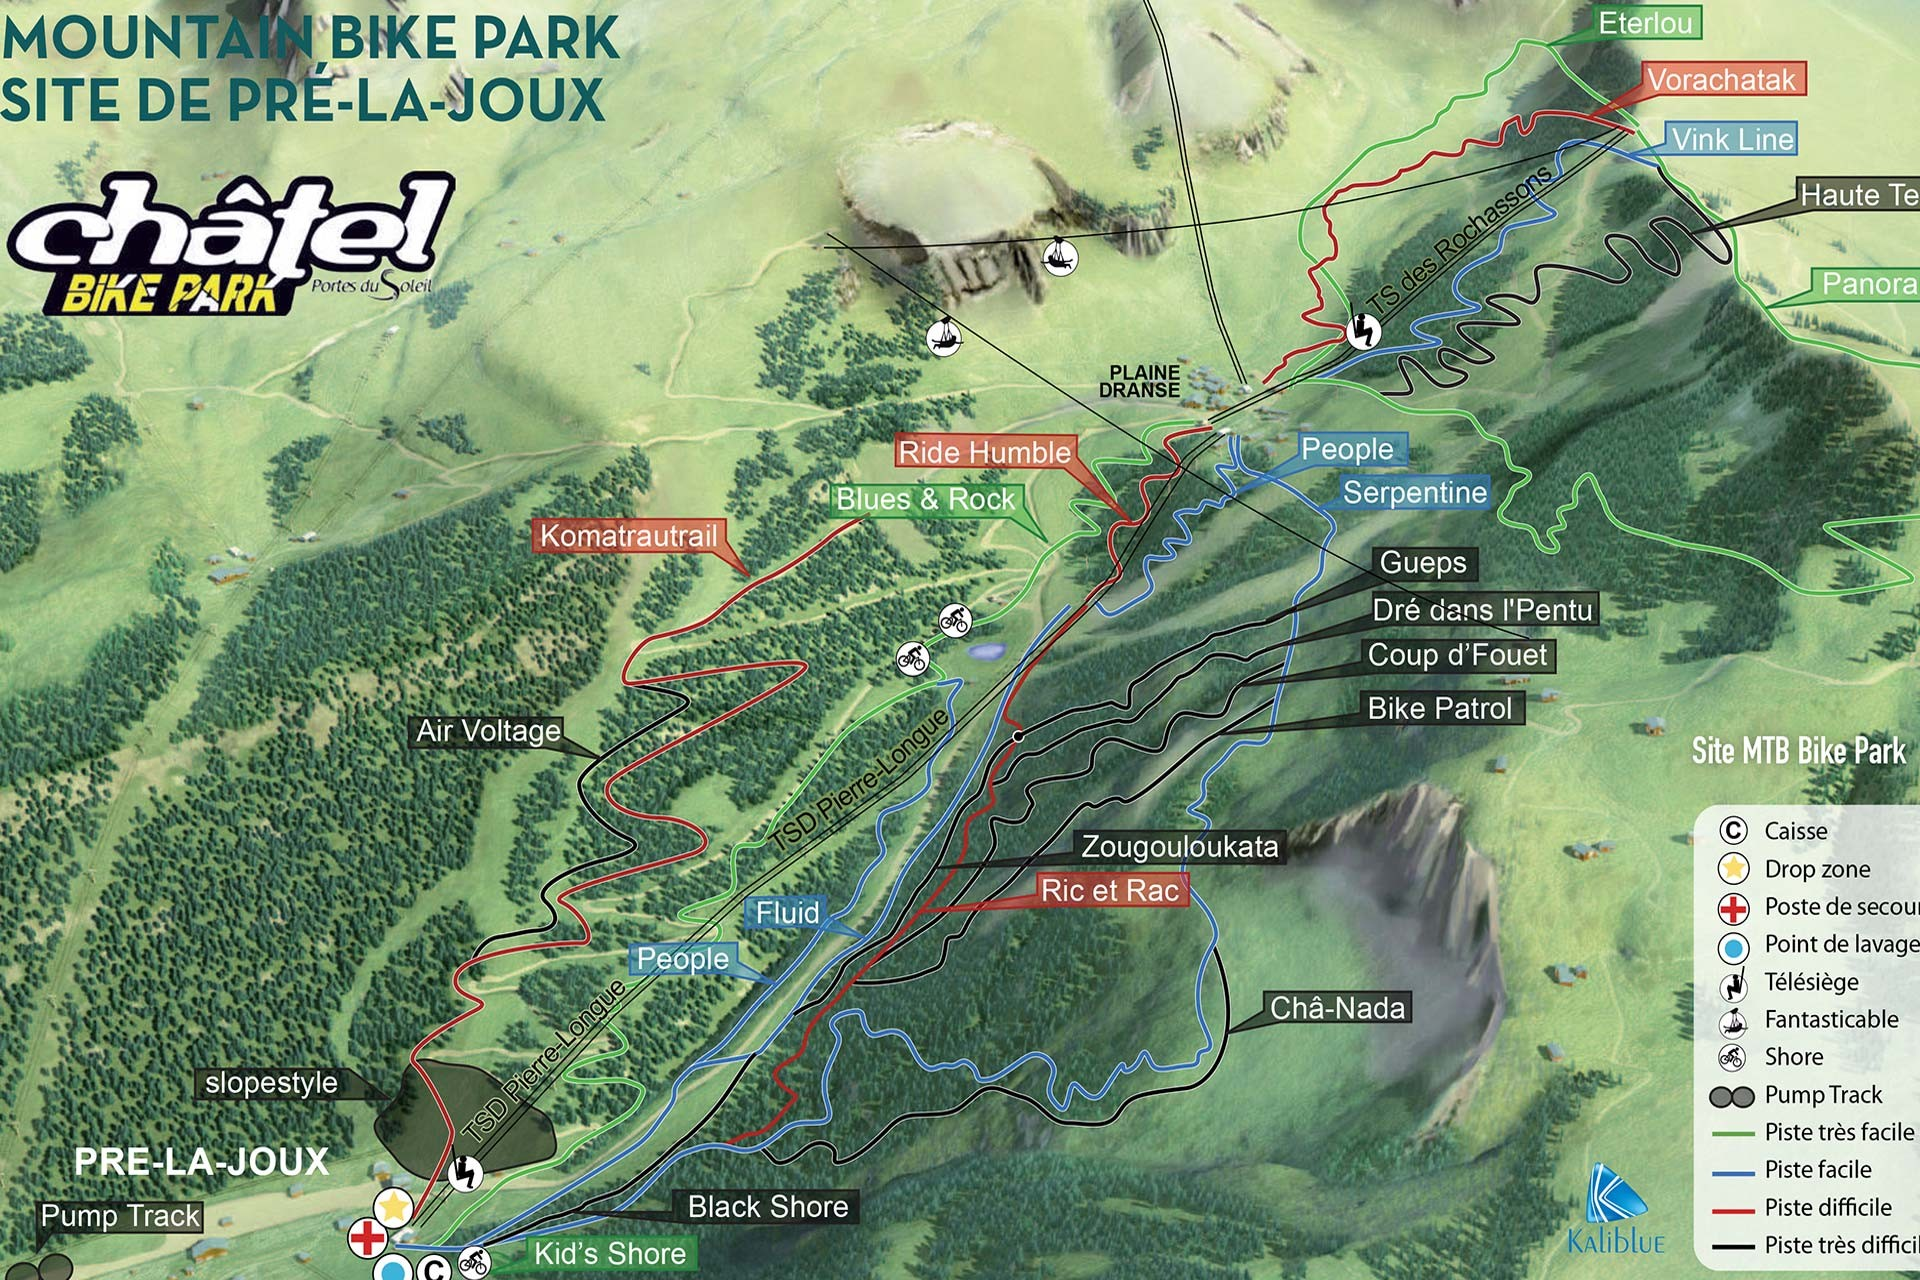 Map of the trails